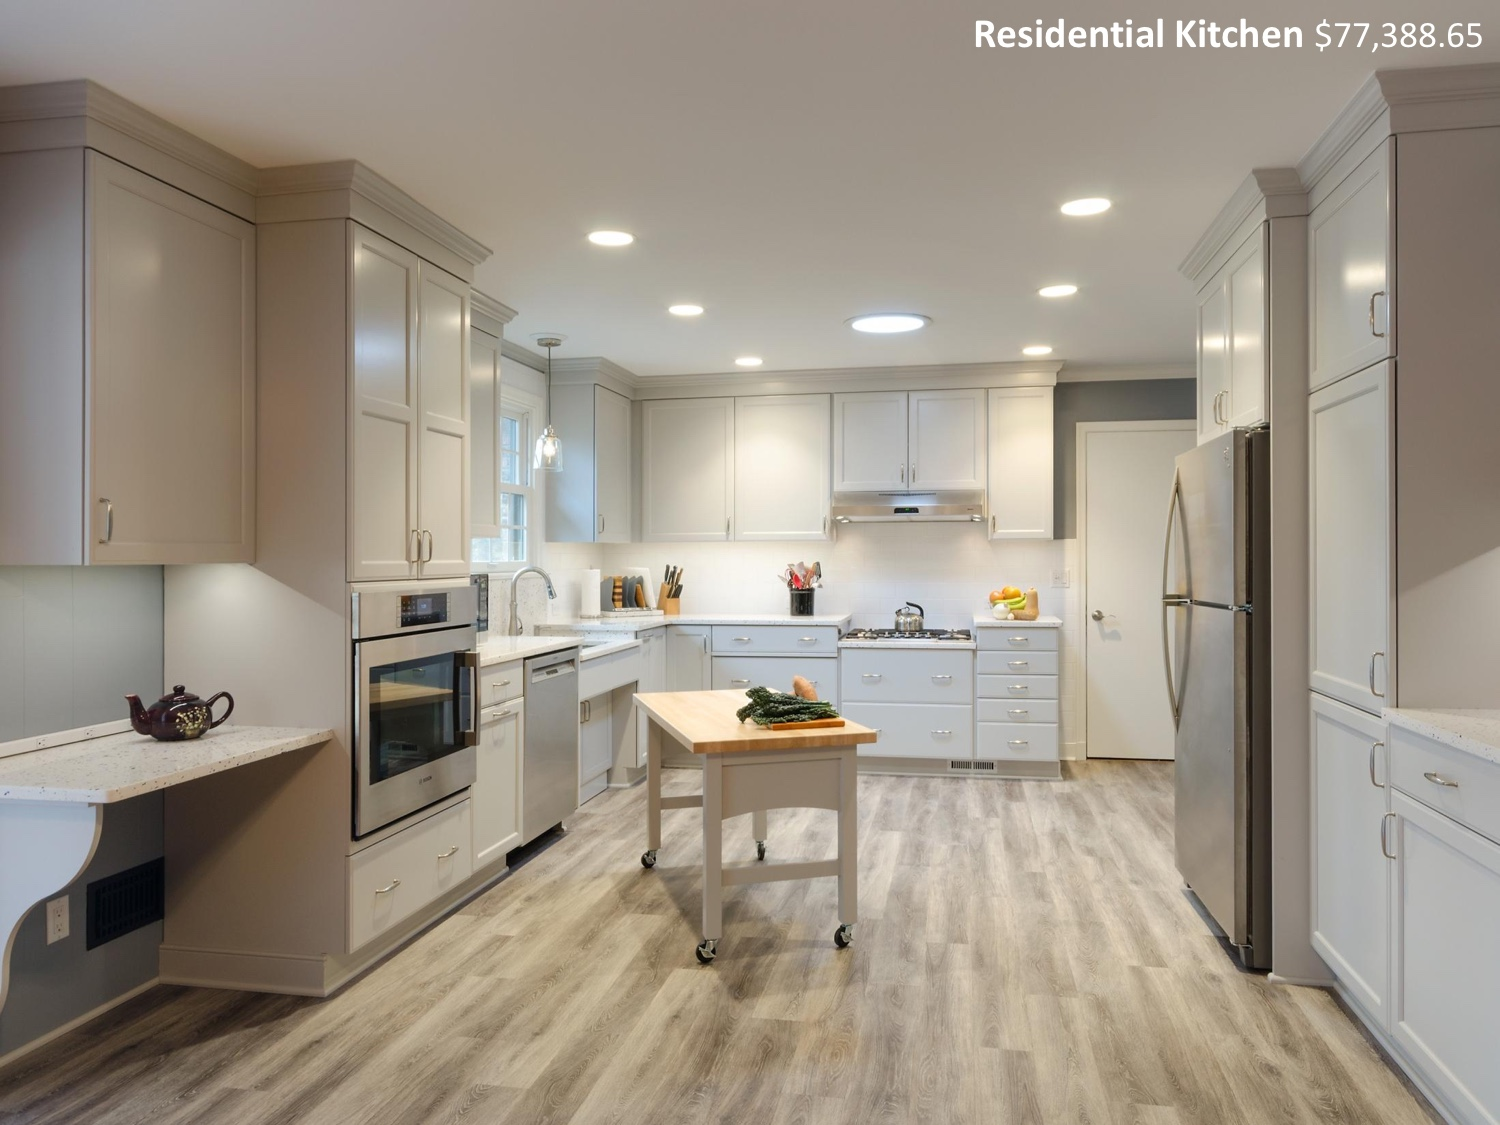 Residential Kitchen Under $100,000 - Custom Kitchens Inc.Designer Douglas Leake